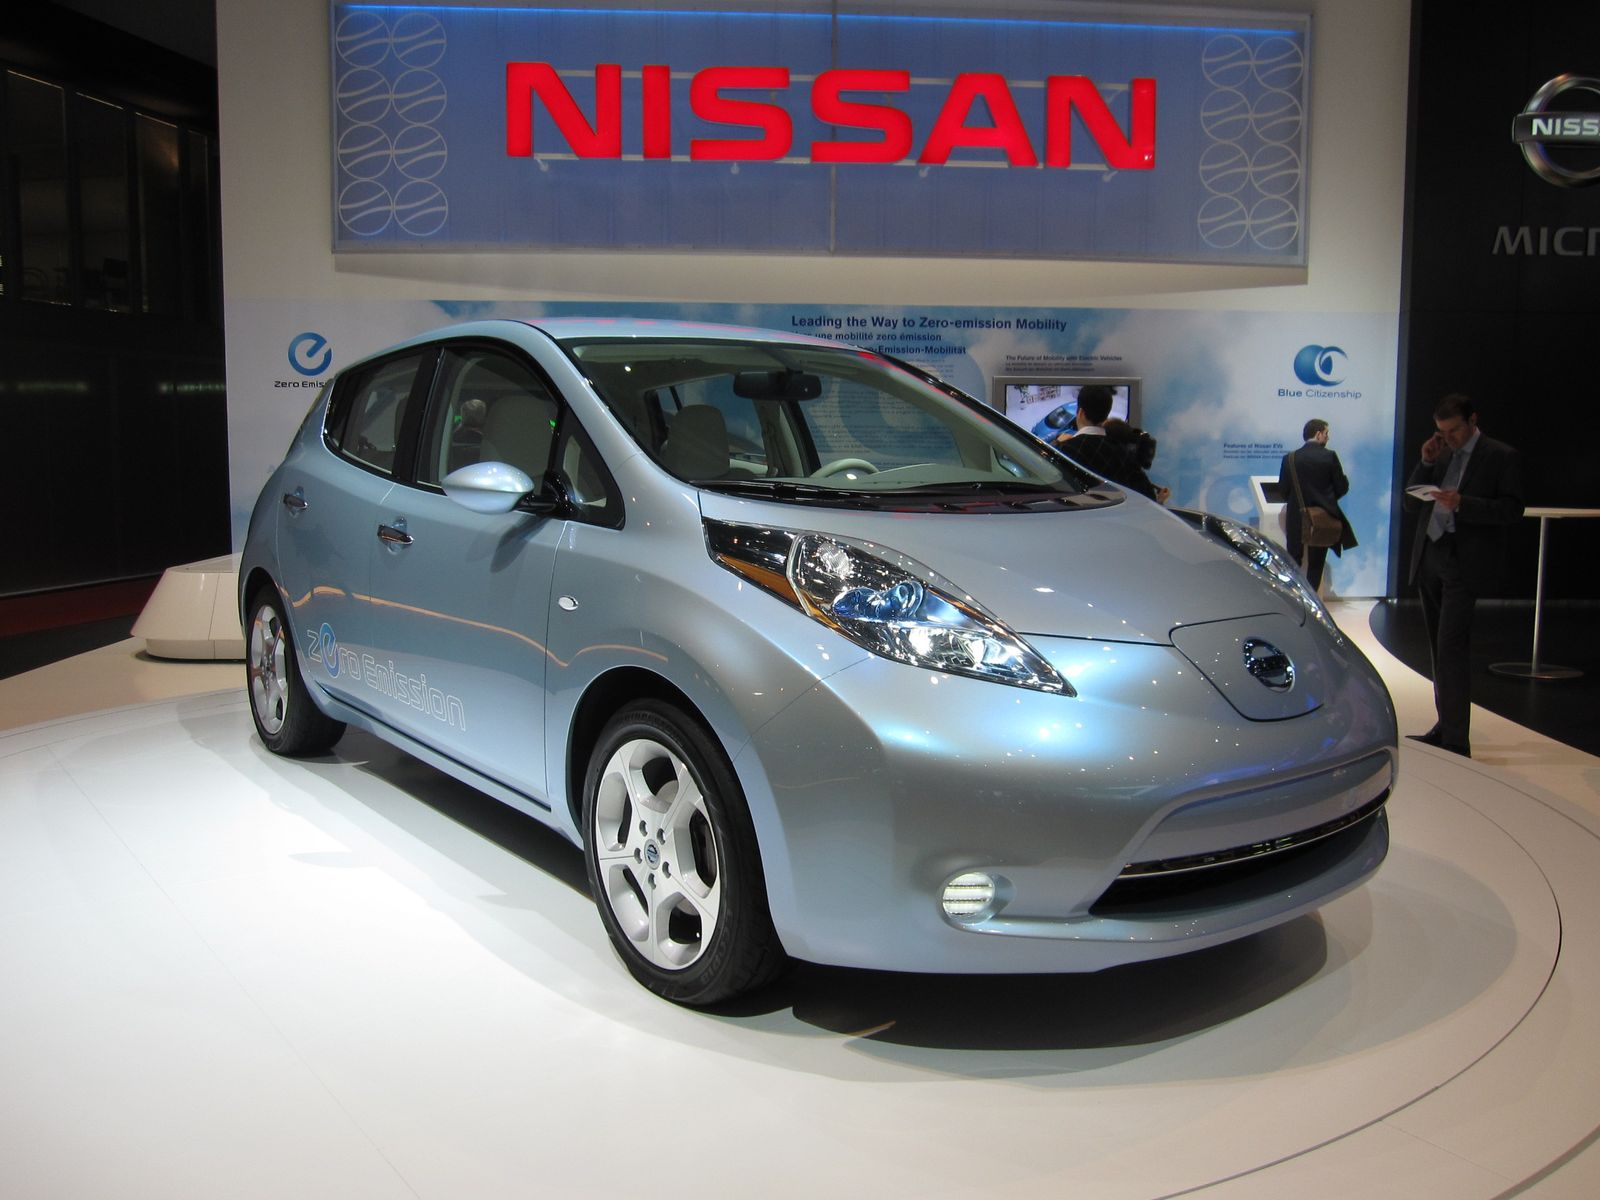 la nissan leaf lectrique conna t le succ s commercial. Black Bedroom Furniture Sets. Home Design Ideas